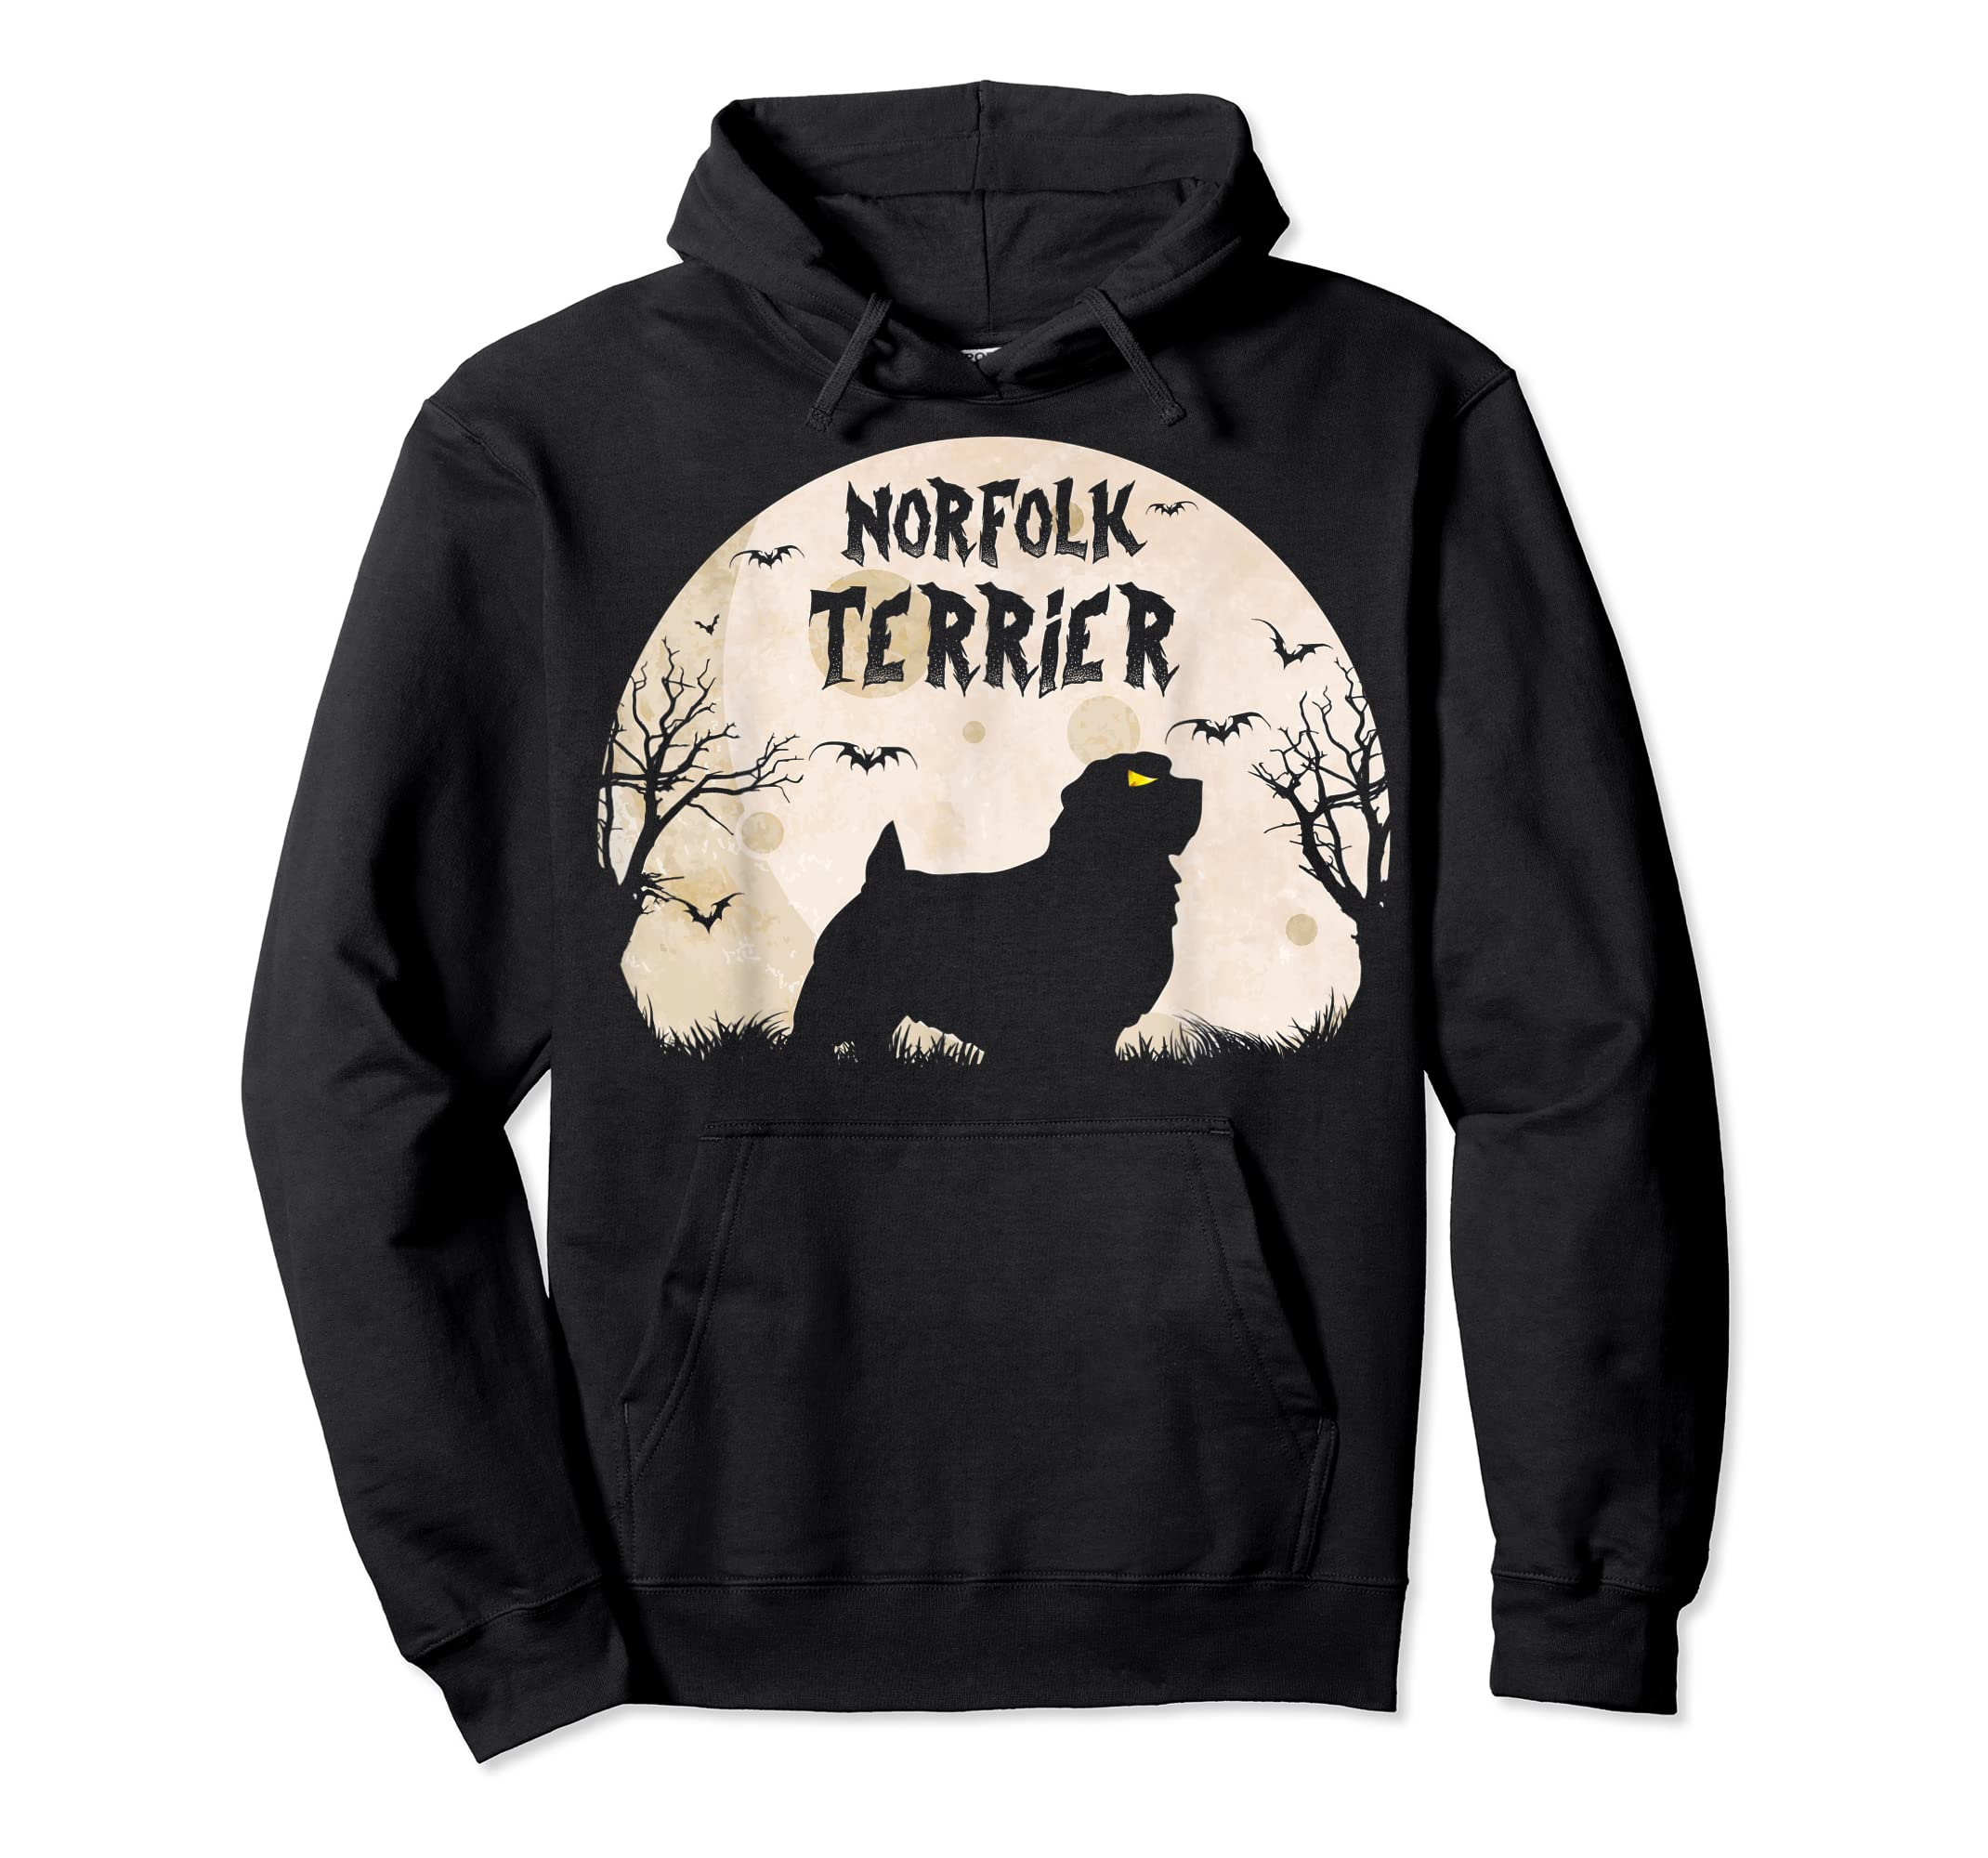 Halloween Horror Norfolk Terrier T-Shirt-Hoodie-Black